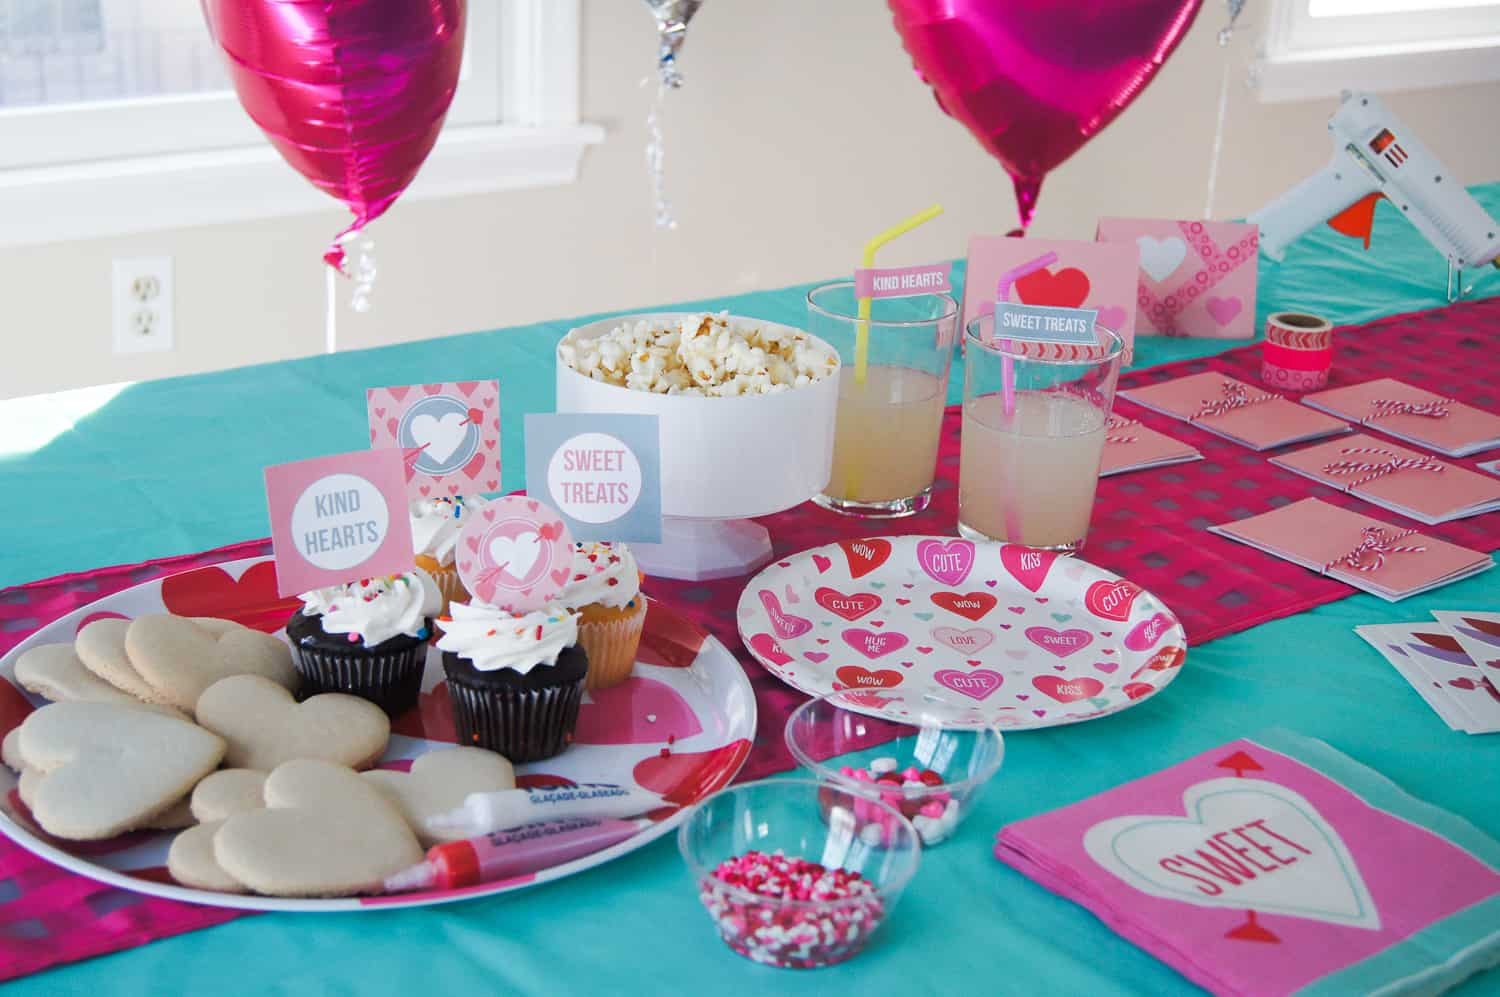 Valentine's Day play date with crafts and treats